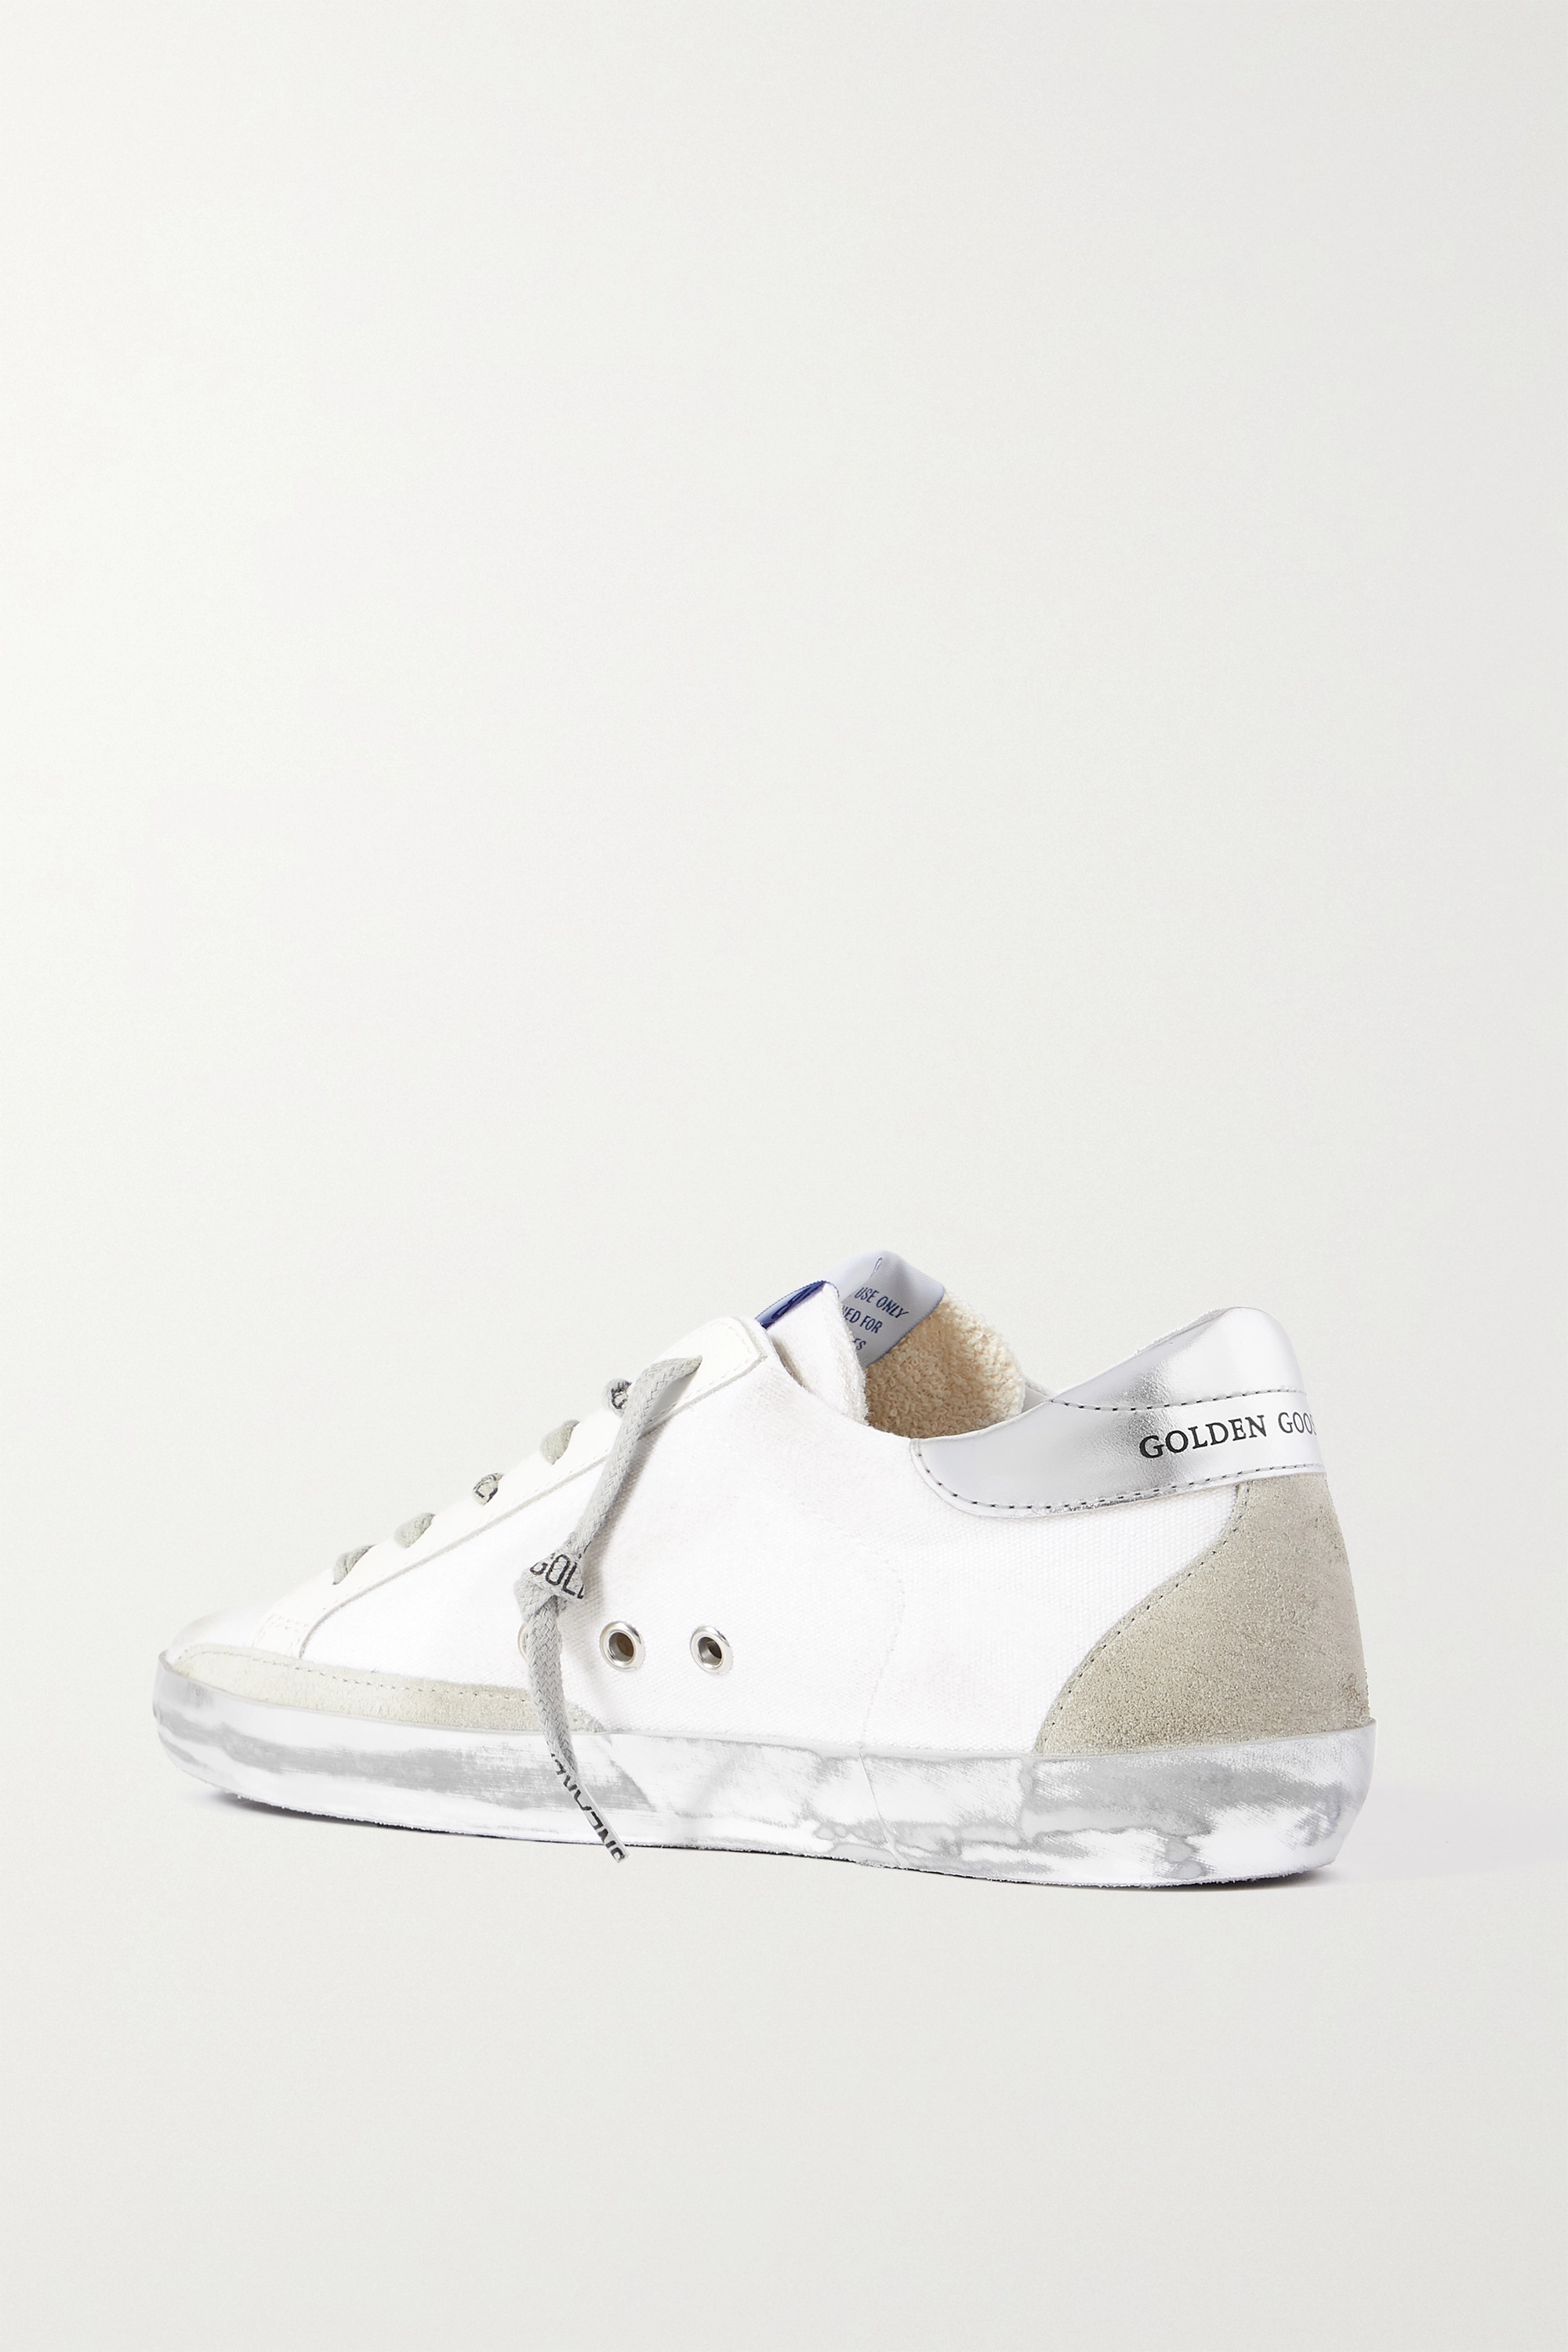 Golden Goose Superstar distressed suede and leather-trimmed canvas sneakers